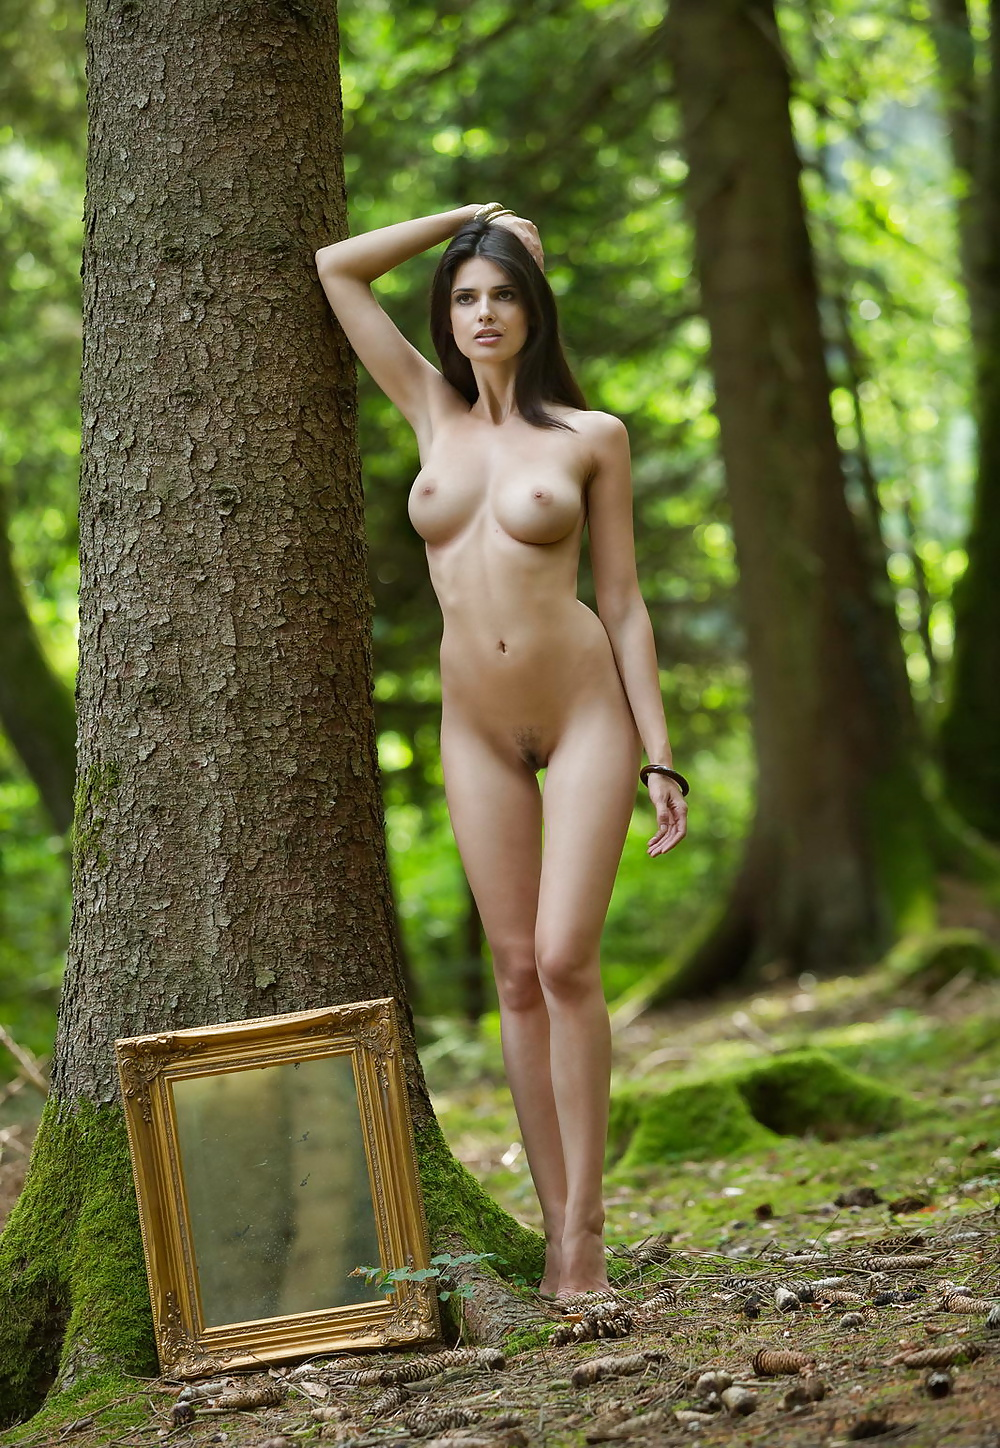 Naked In The Woods Pics